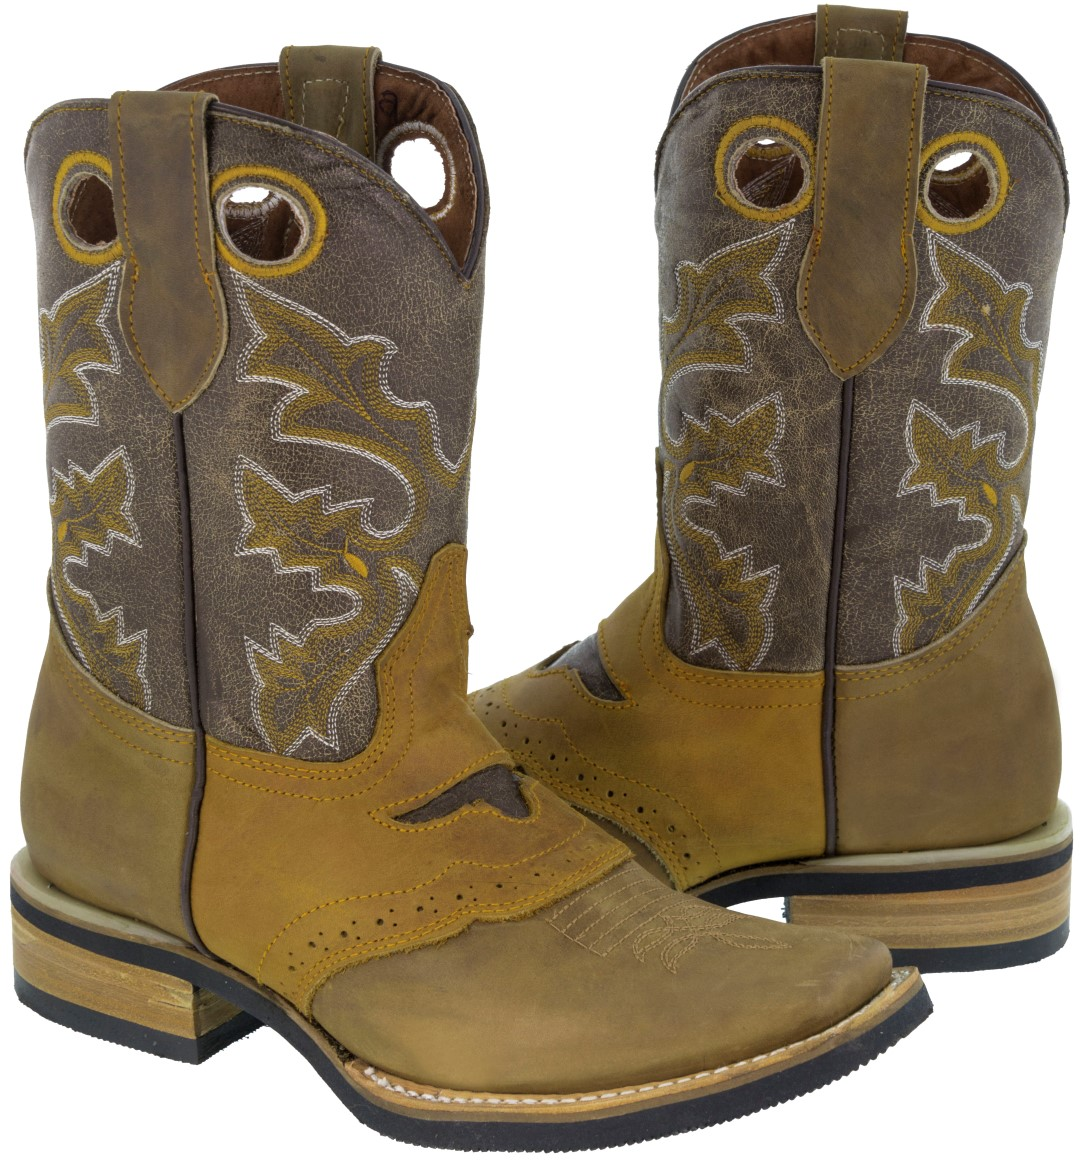 Men's Tan Genuine Saddle Western Cowboy Boots Rodeo Toe Rubber Sole